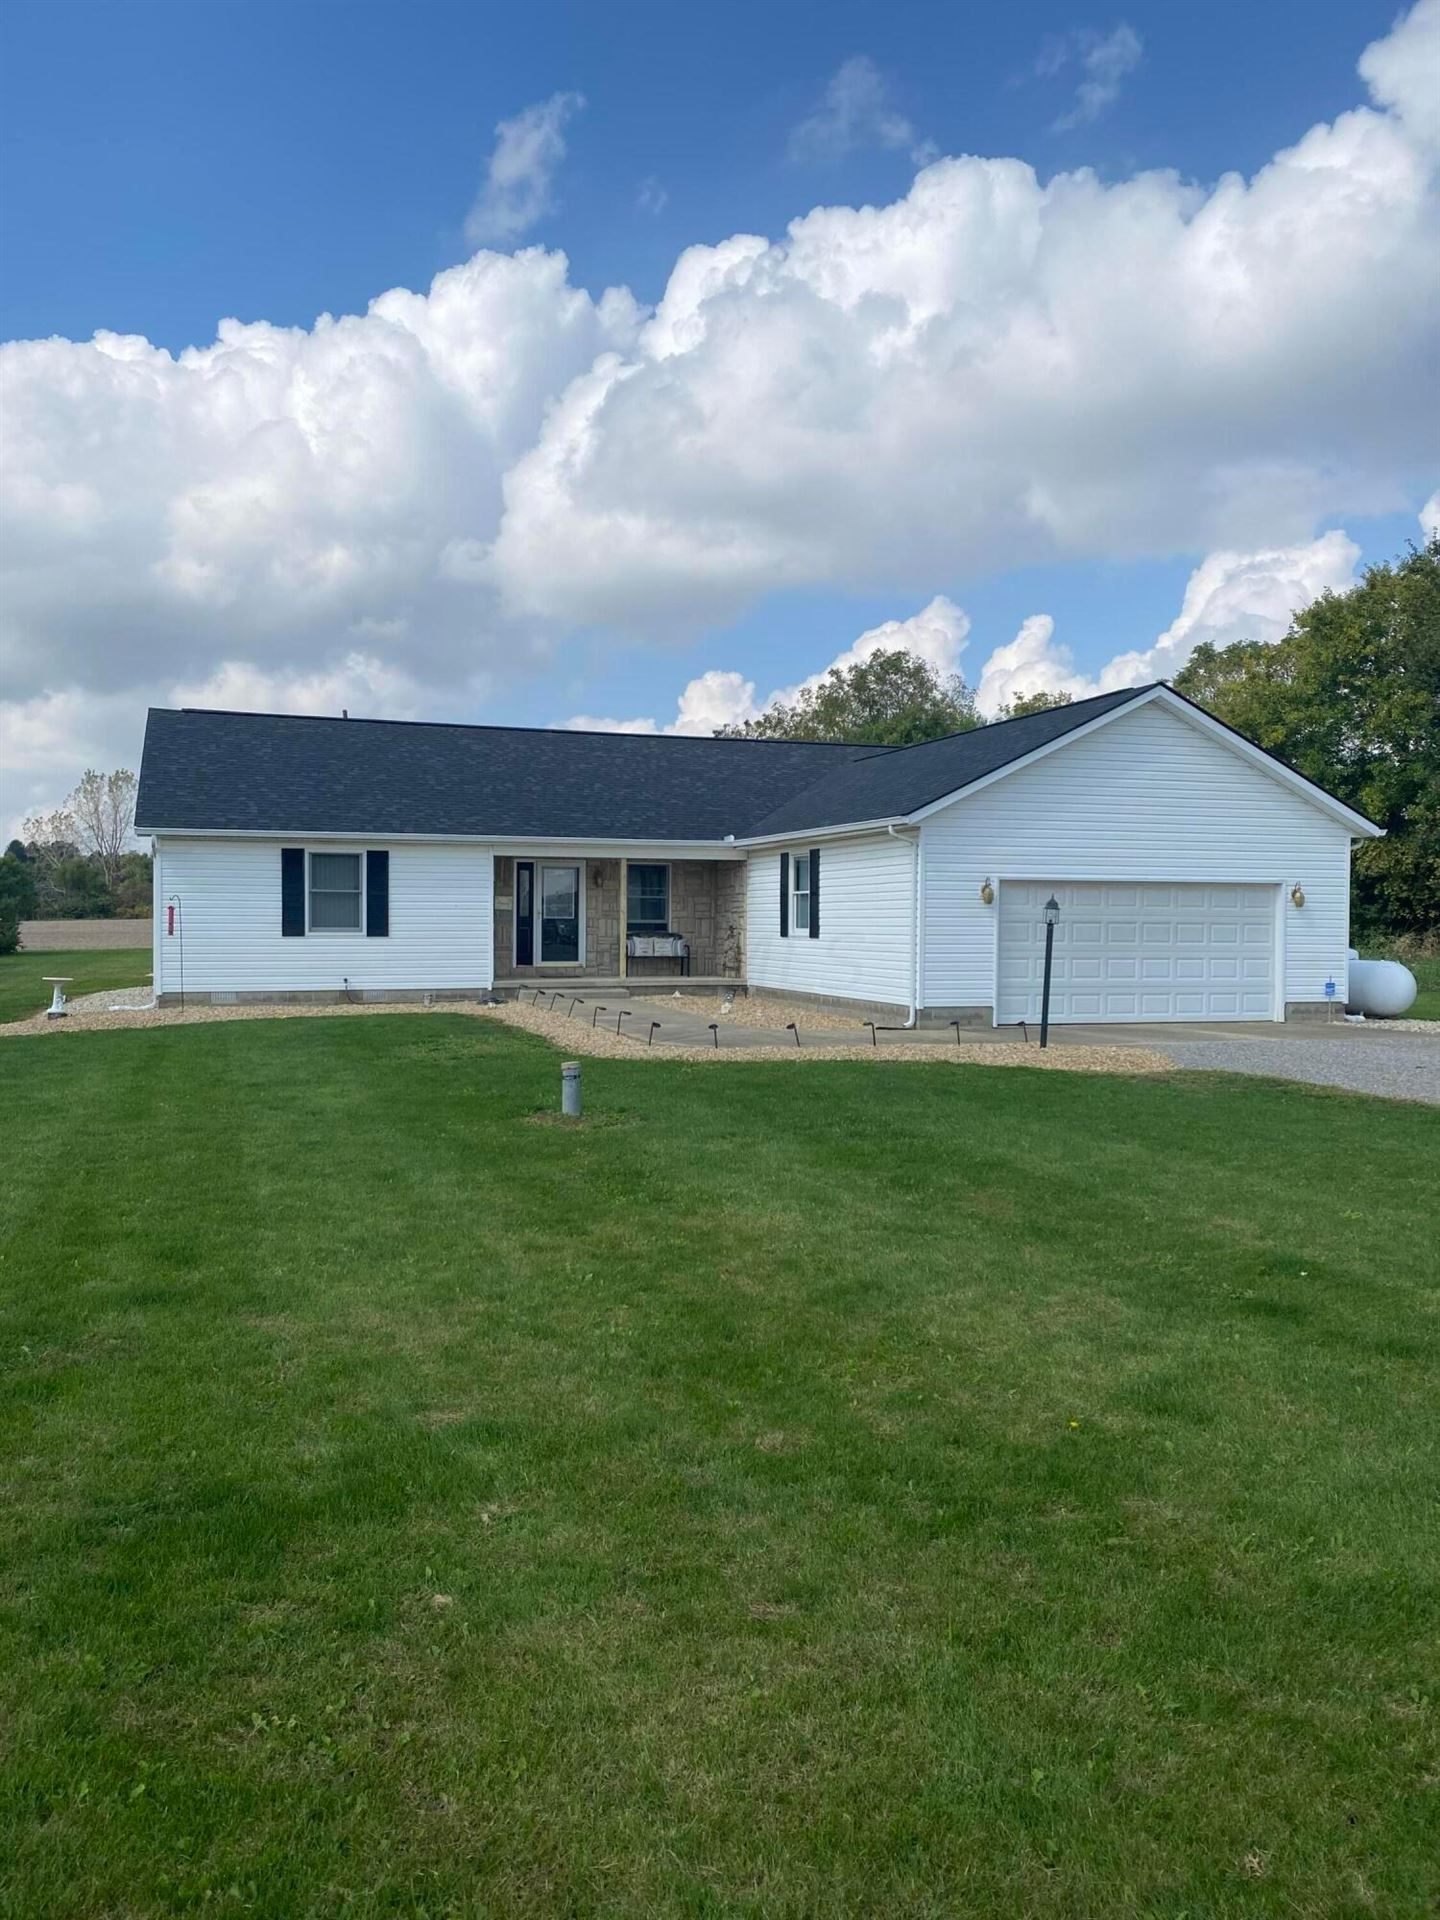 Photo of 316 Mutual Union Road S, Cable, OH 43009 (MLS # 221036770)